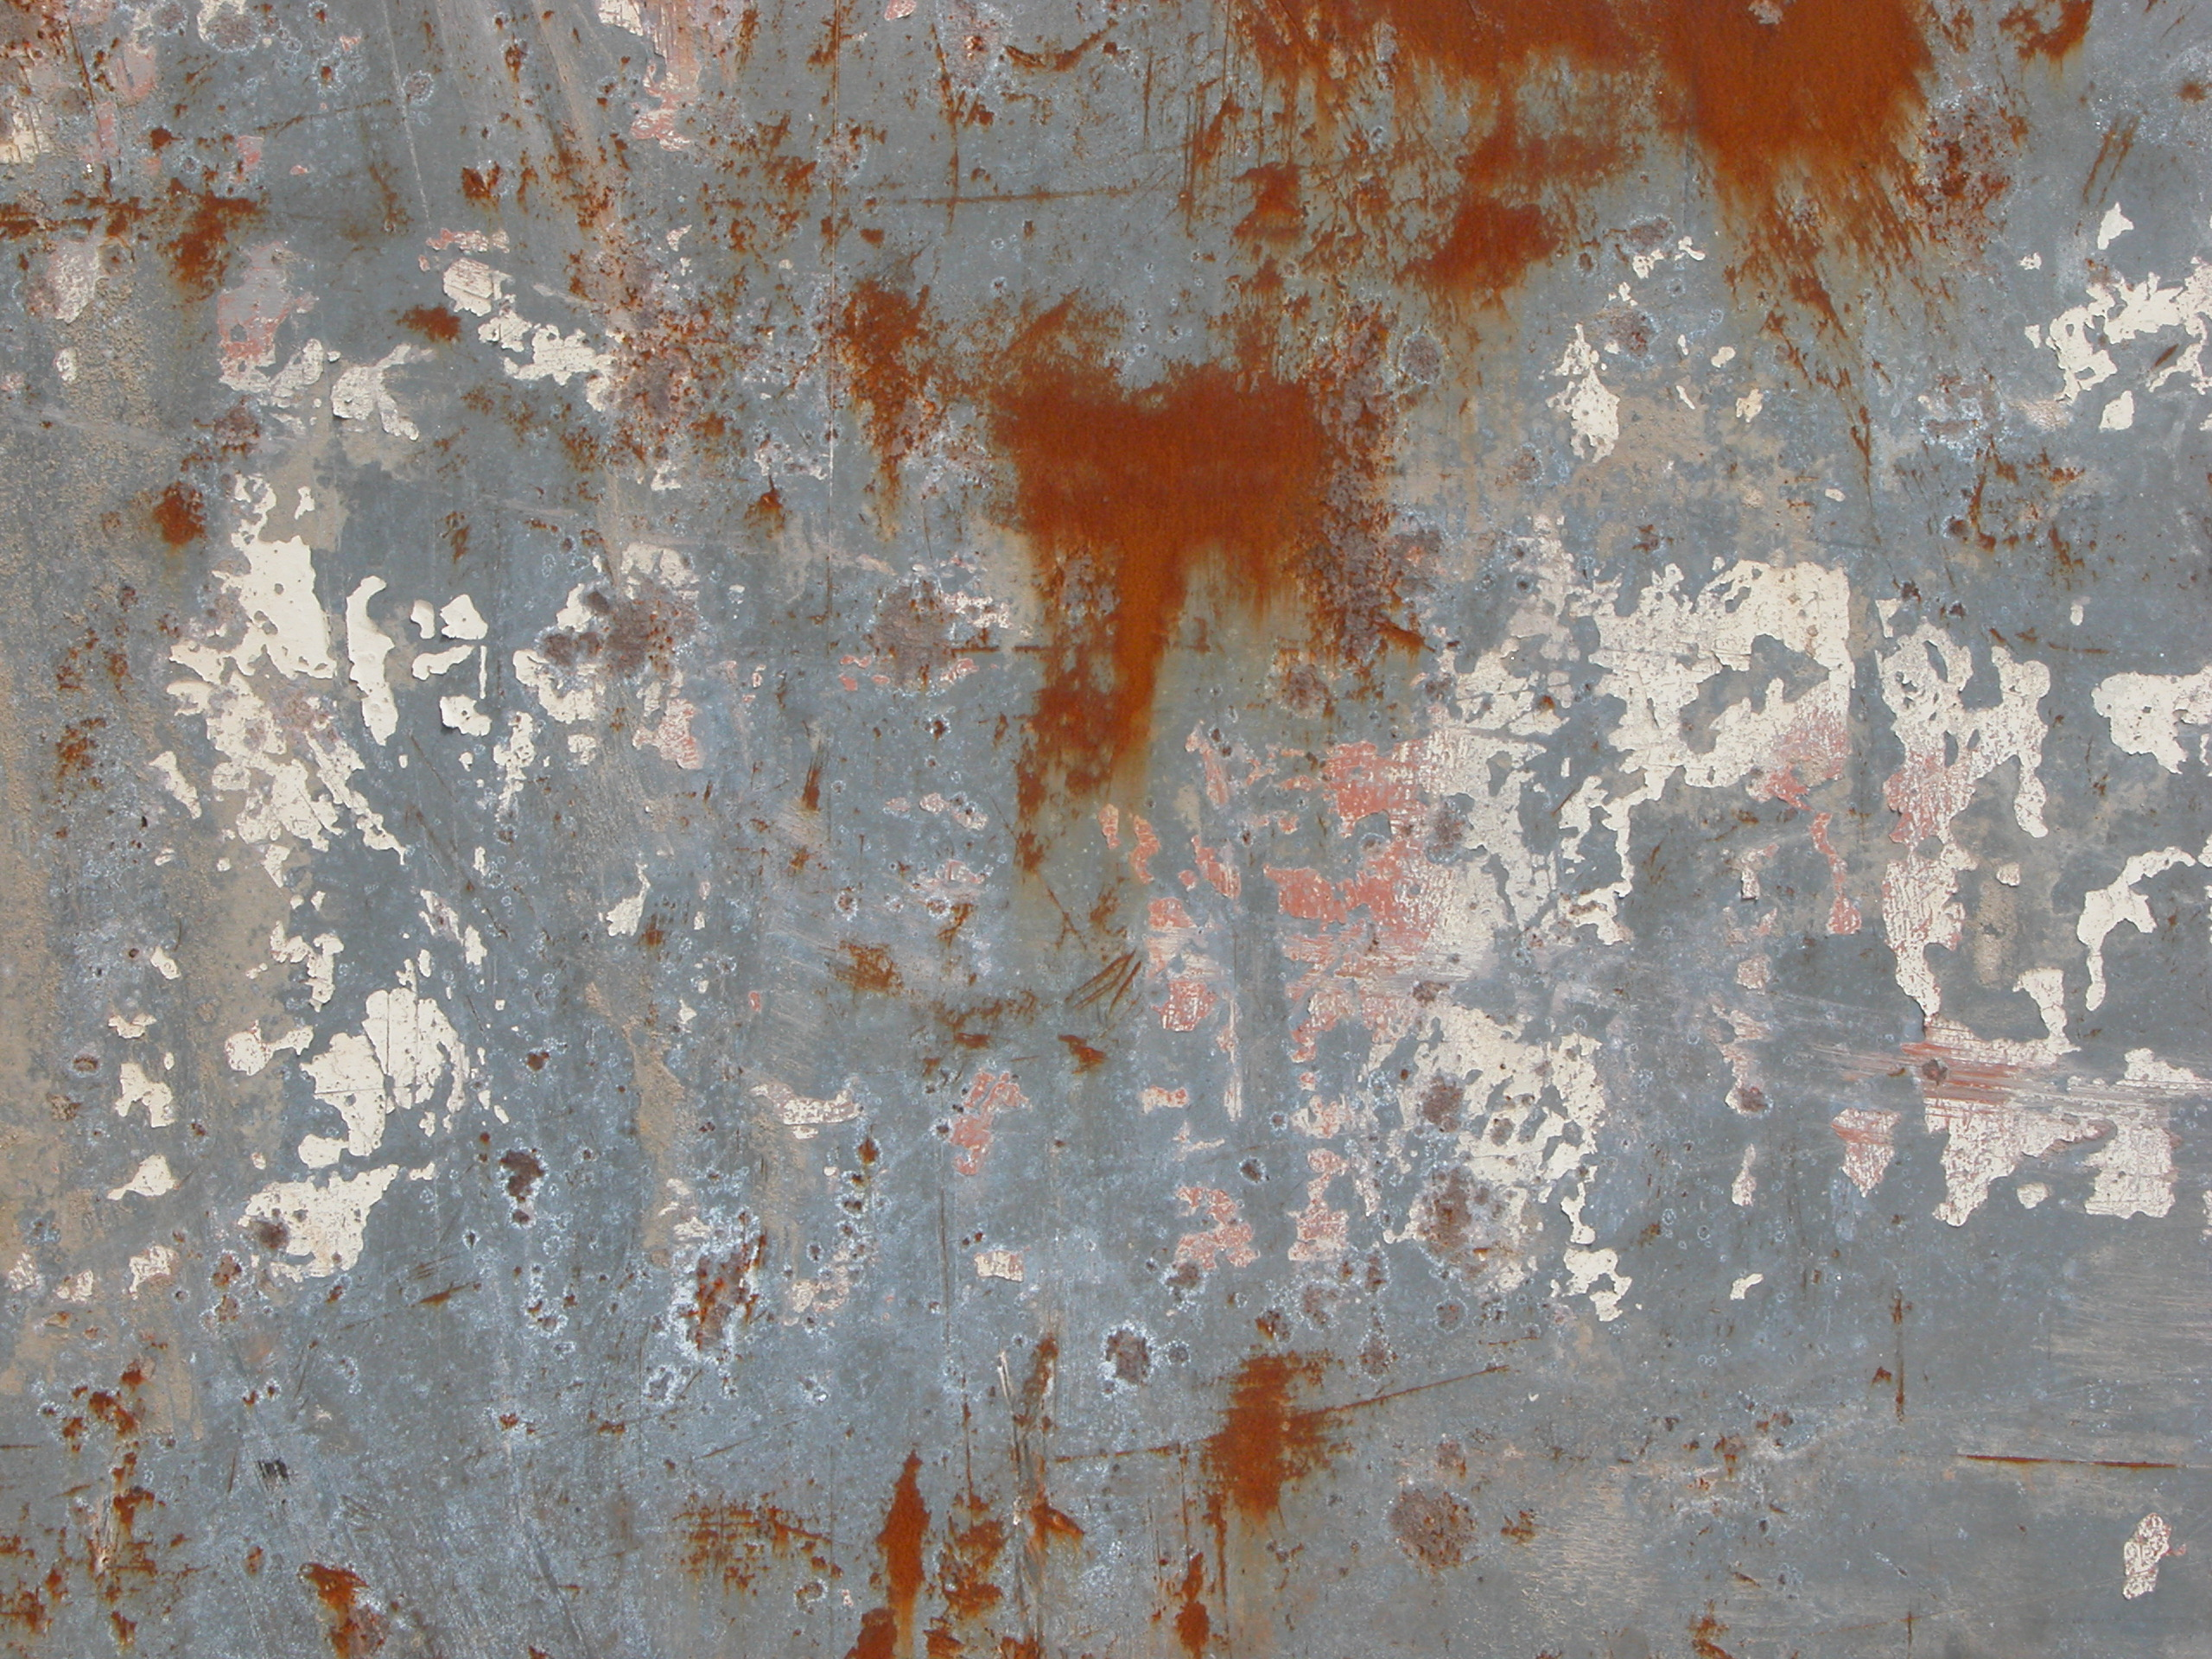 steel and corrosion However, when steel is placed into concrete it develops a ppassive oxide film,  due to the high ph of the concrete this passive film prevents further corrosion of .